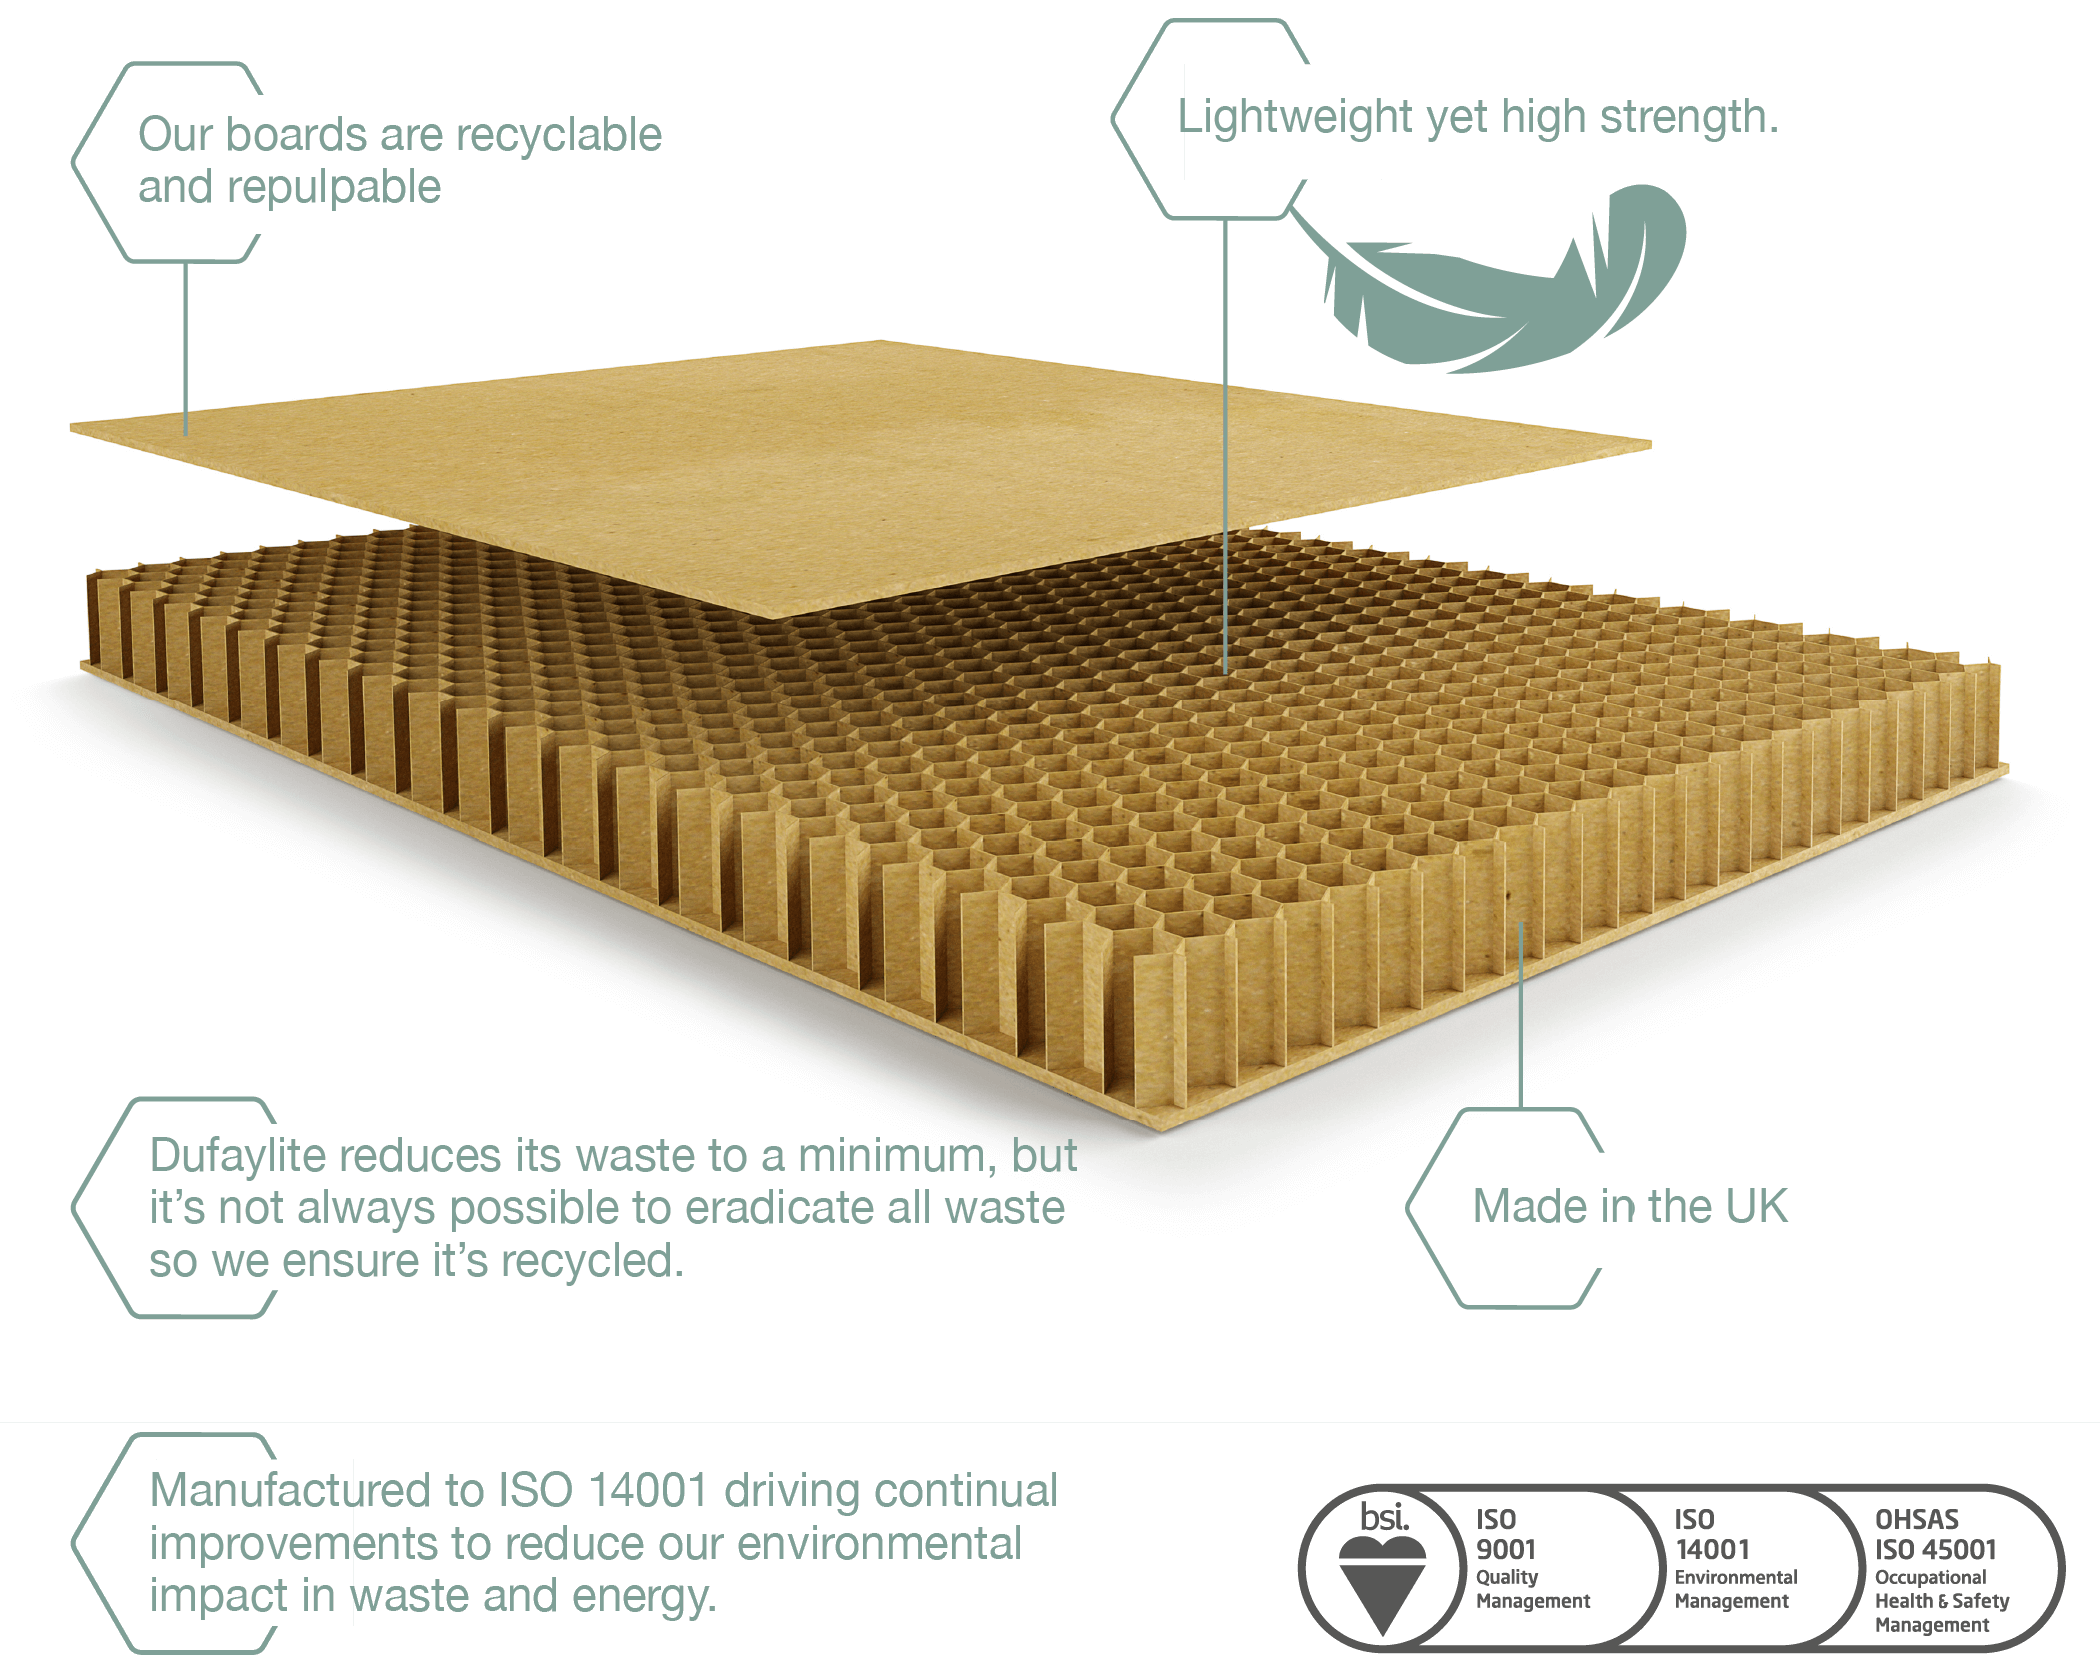 Dufaylite recycled honeycomb board diagram